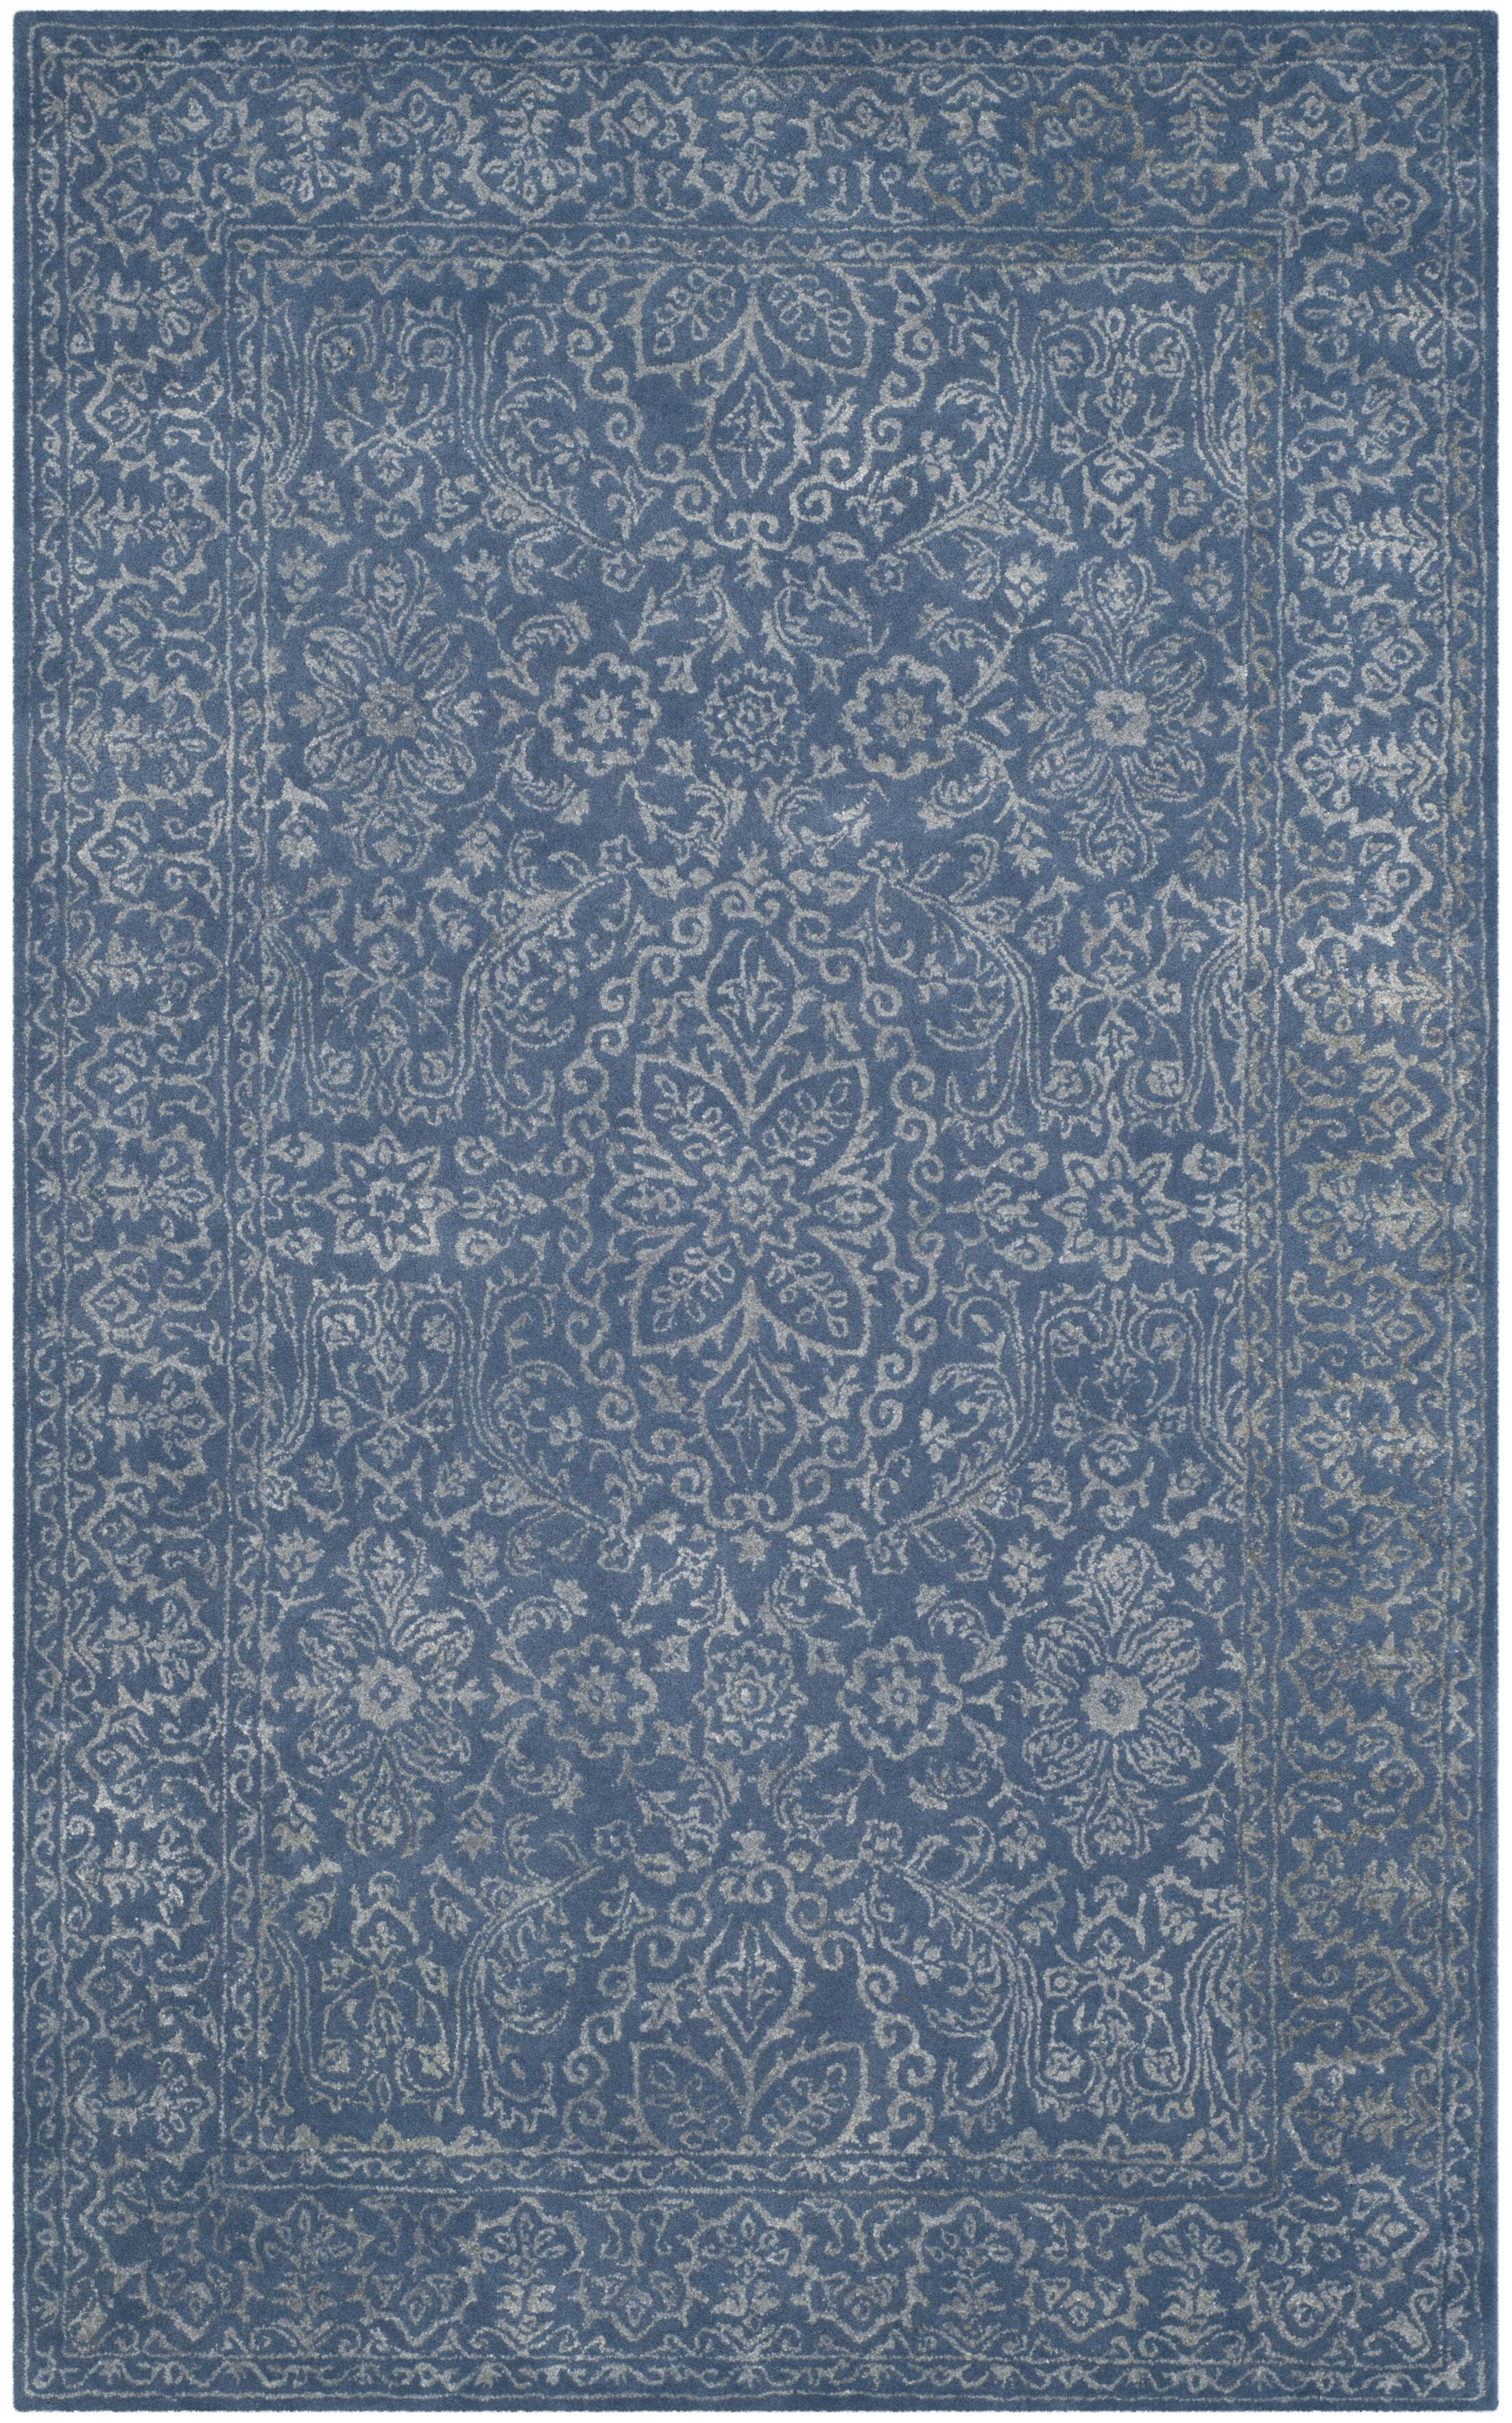 Wilkins Hand-Tufted Gray/Blue Area Rug Rug Size: Rectangle 6' x 9'